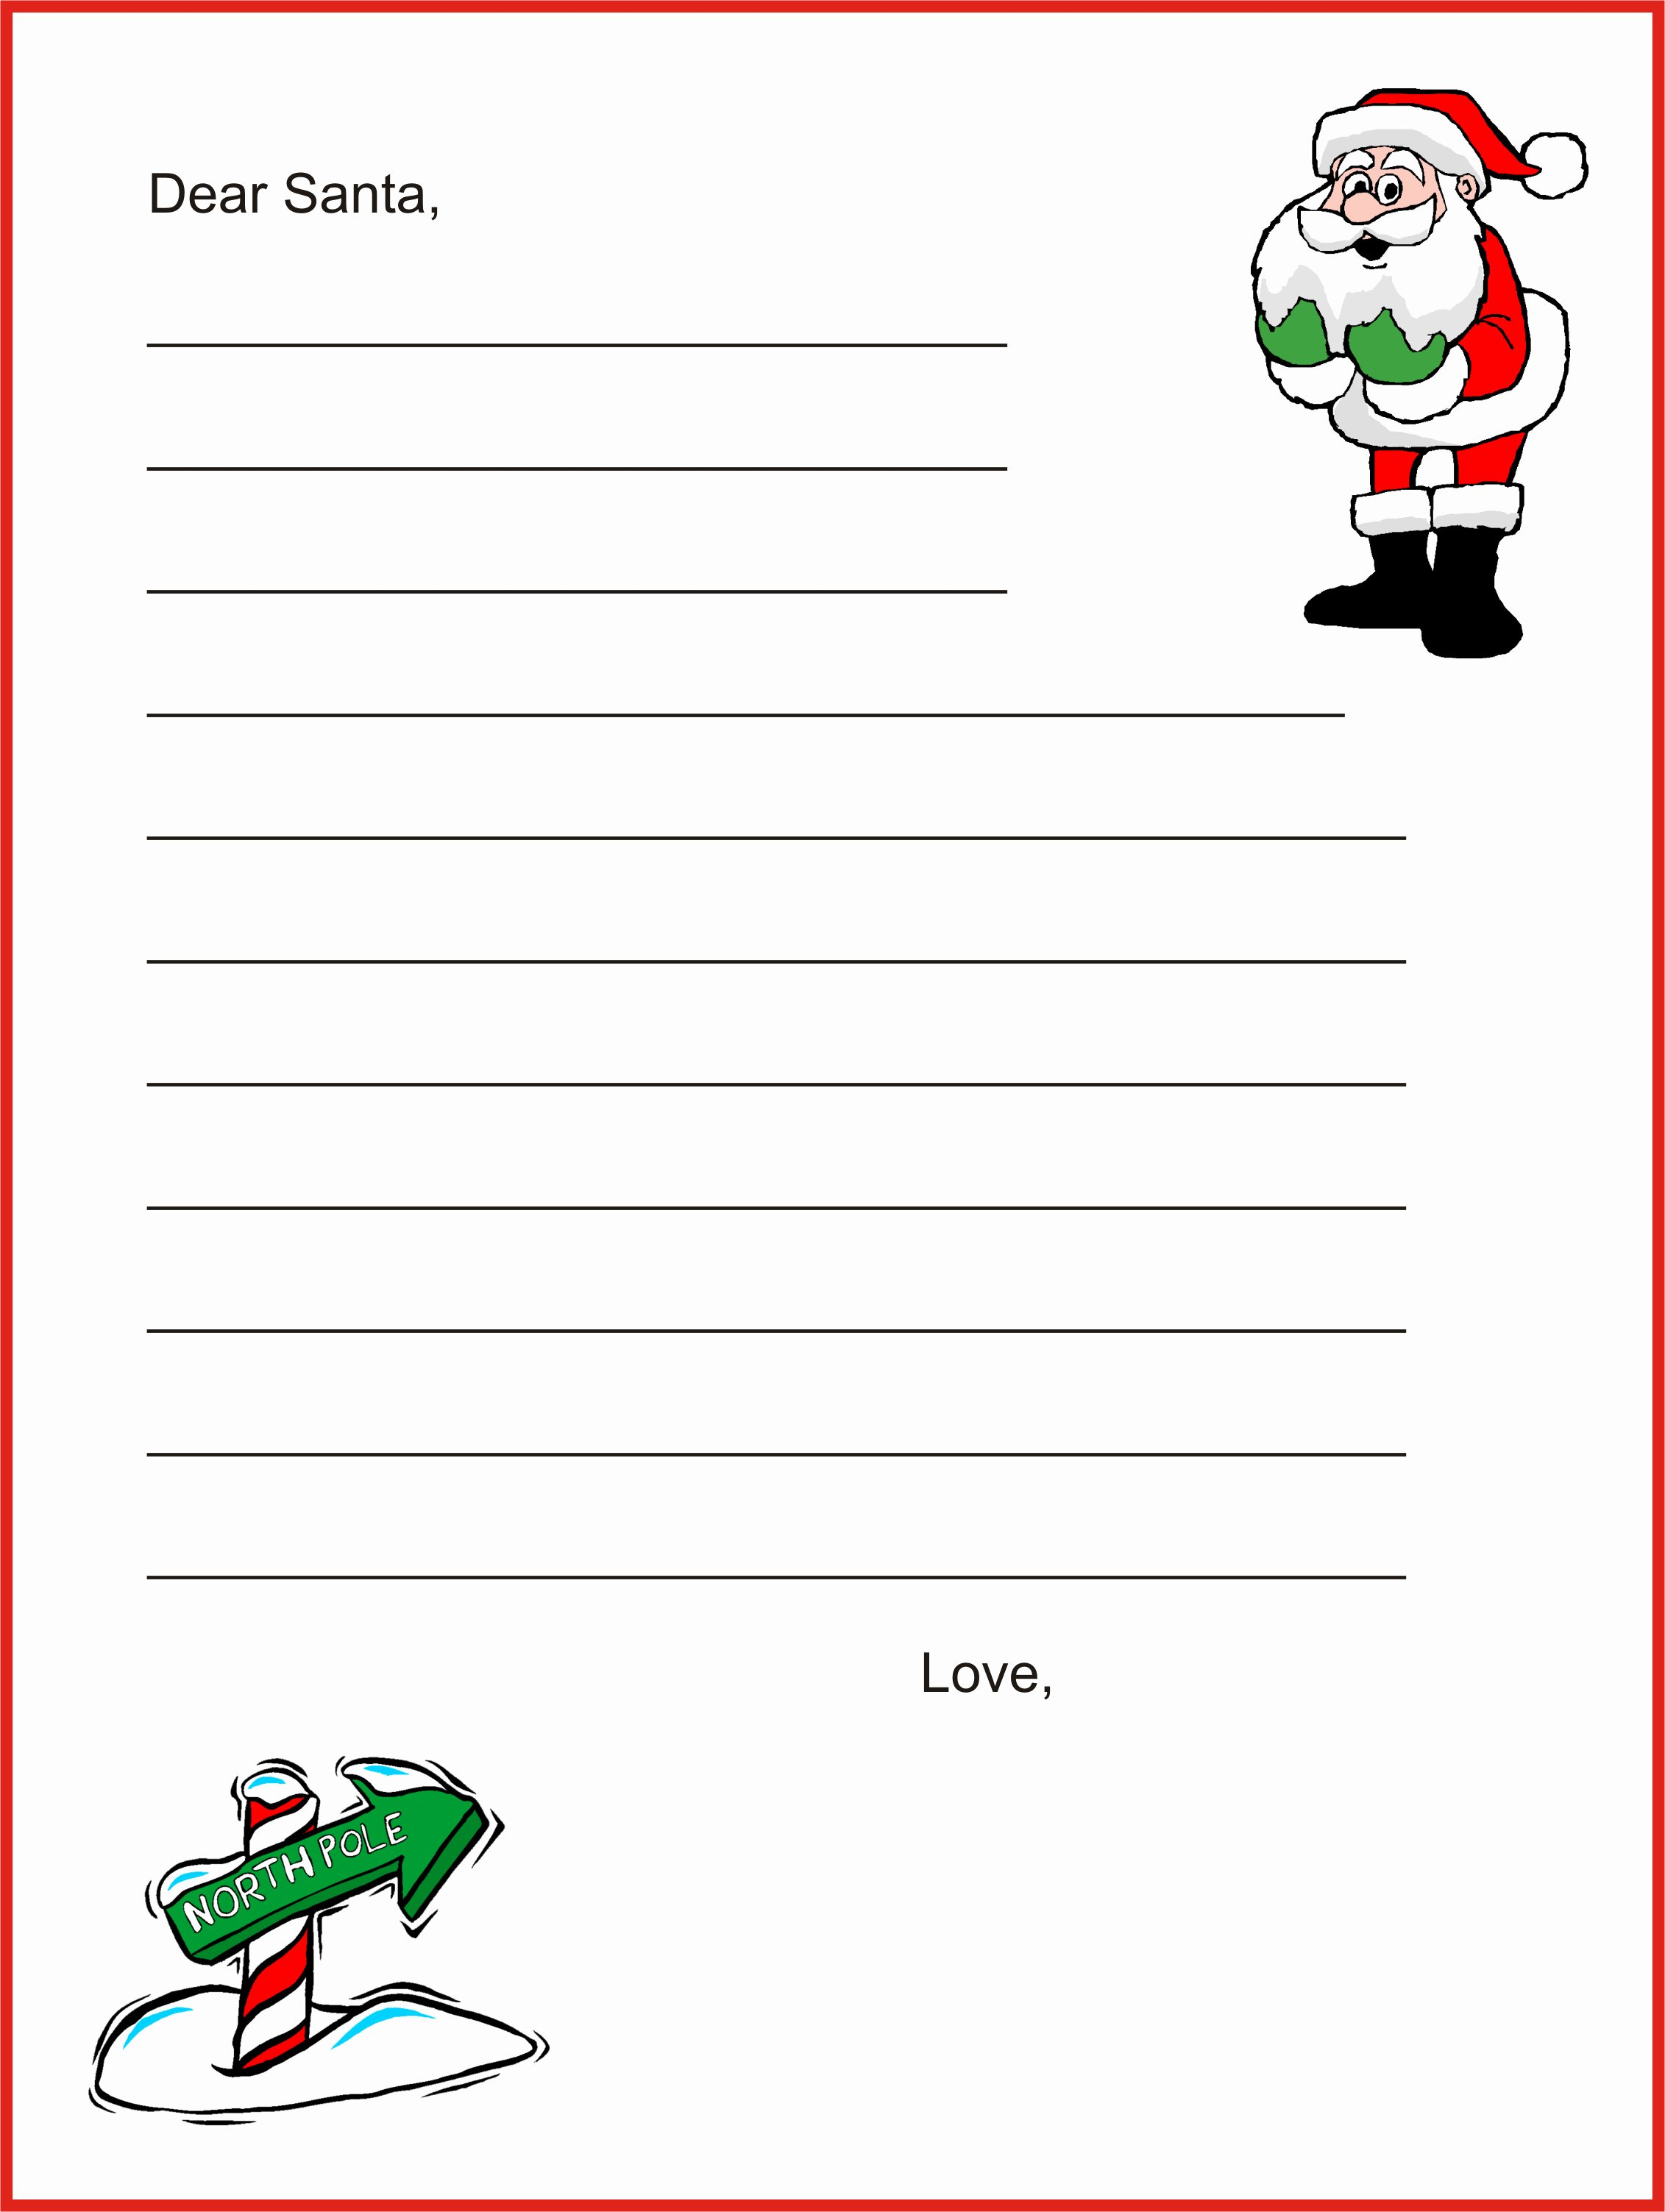 Printable Letter Writing Template Awesome Free Printable Dear Santa Letter Templates Hd Writing Co